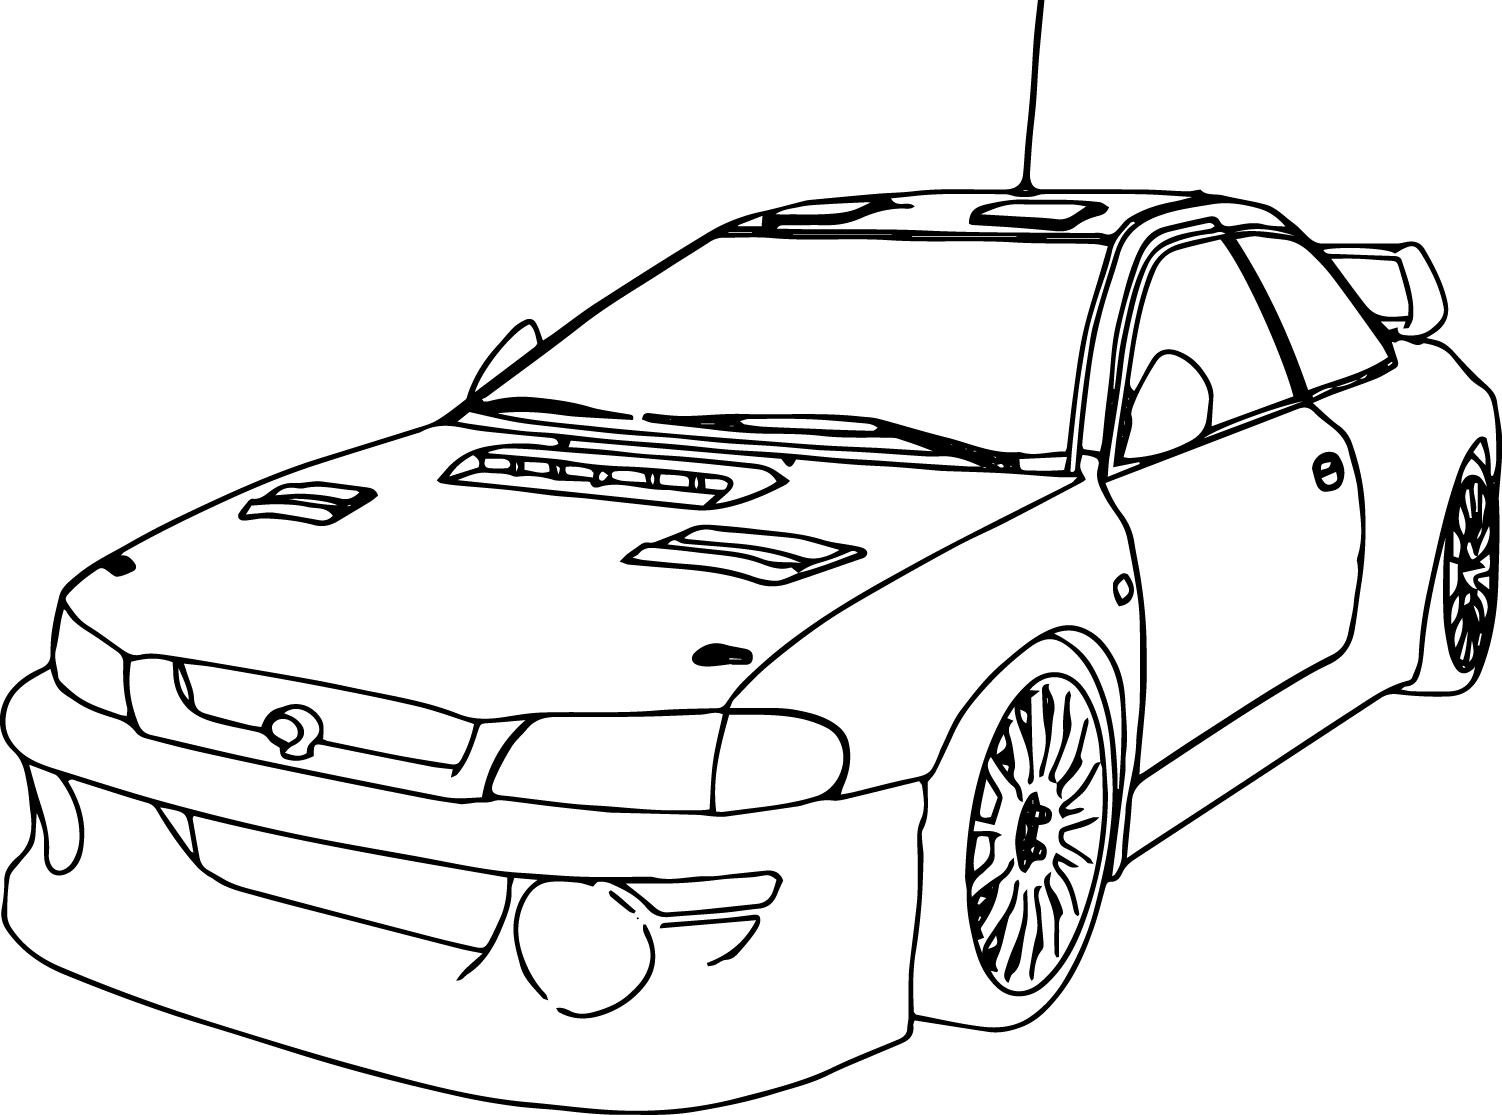 Sport Race Car Coloring Page Perspective | Wecoloringpage.com